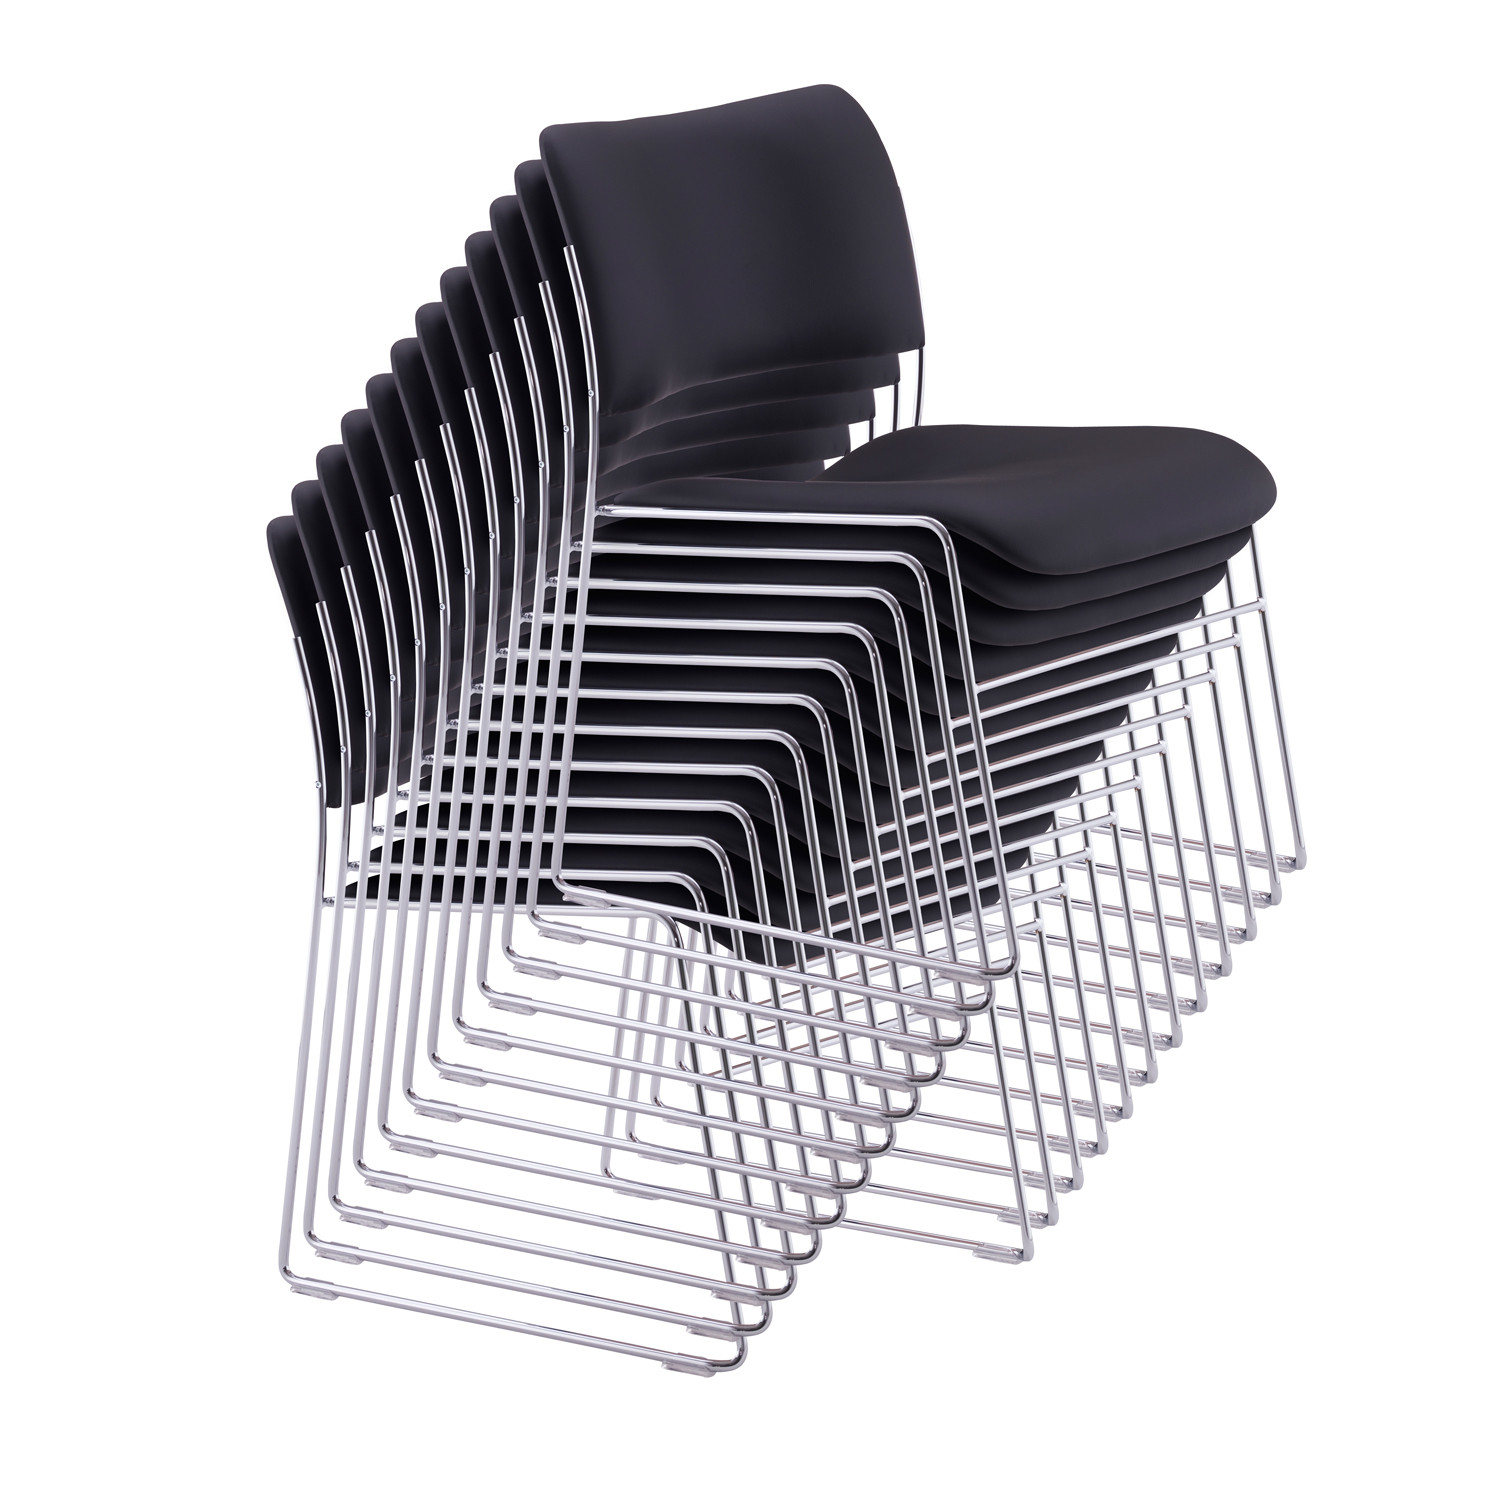 40 4 Stacking Chairs David Rowland 40 4 Seating Apres